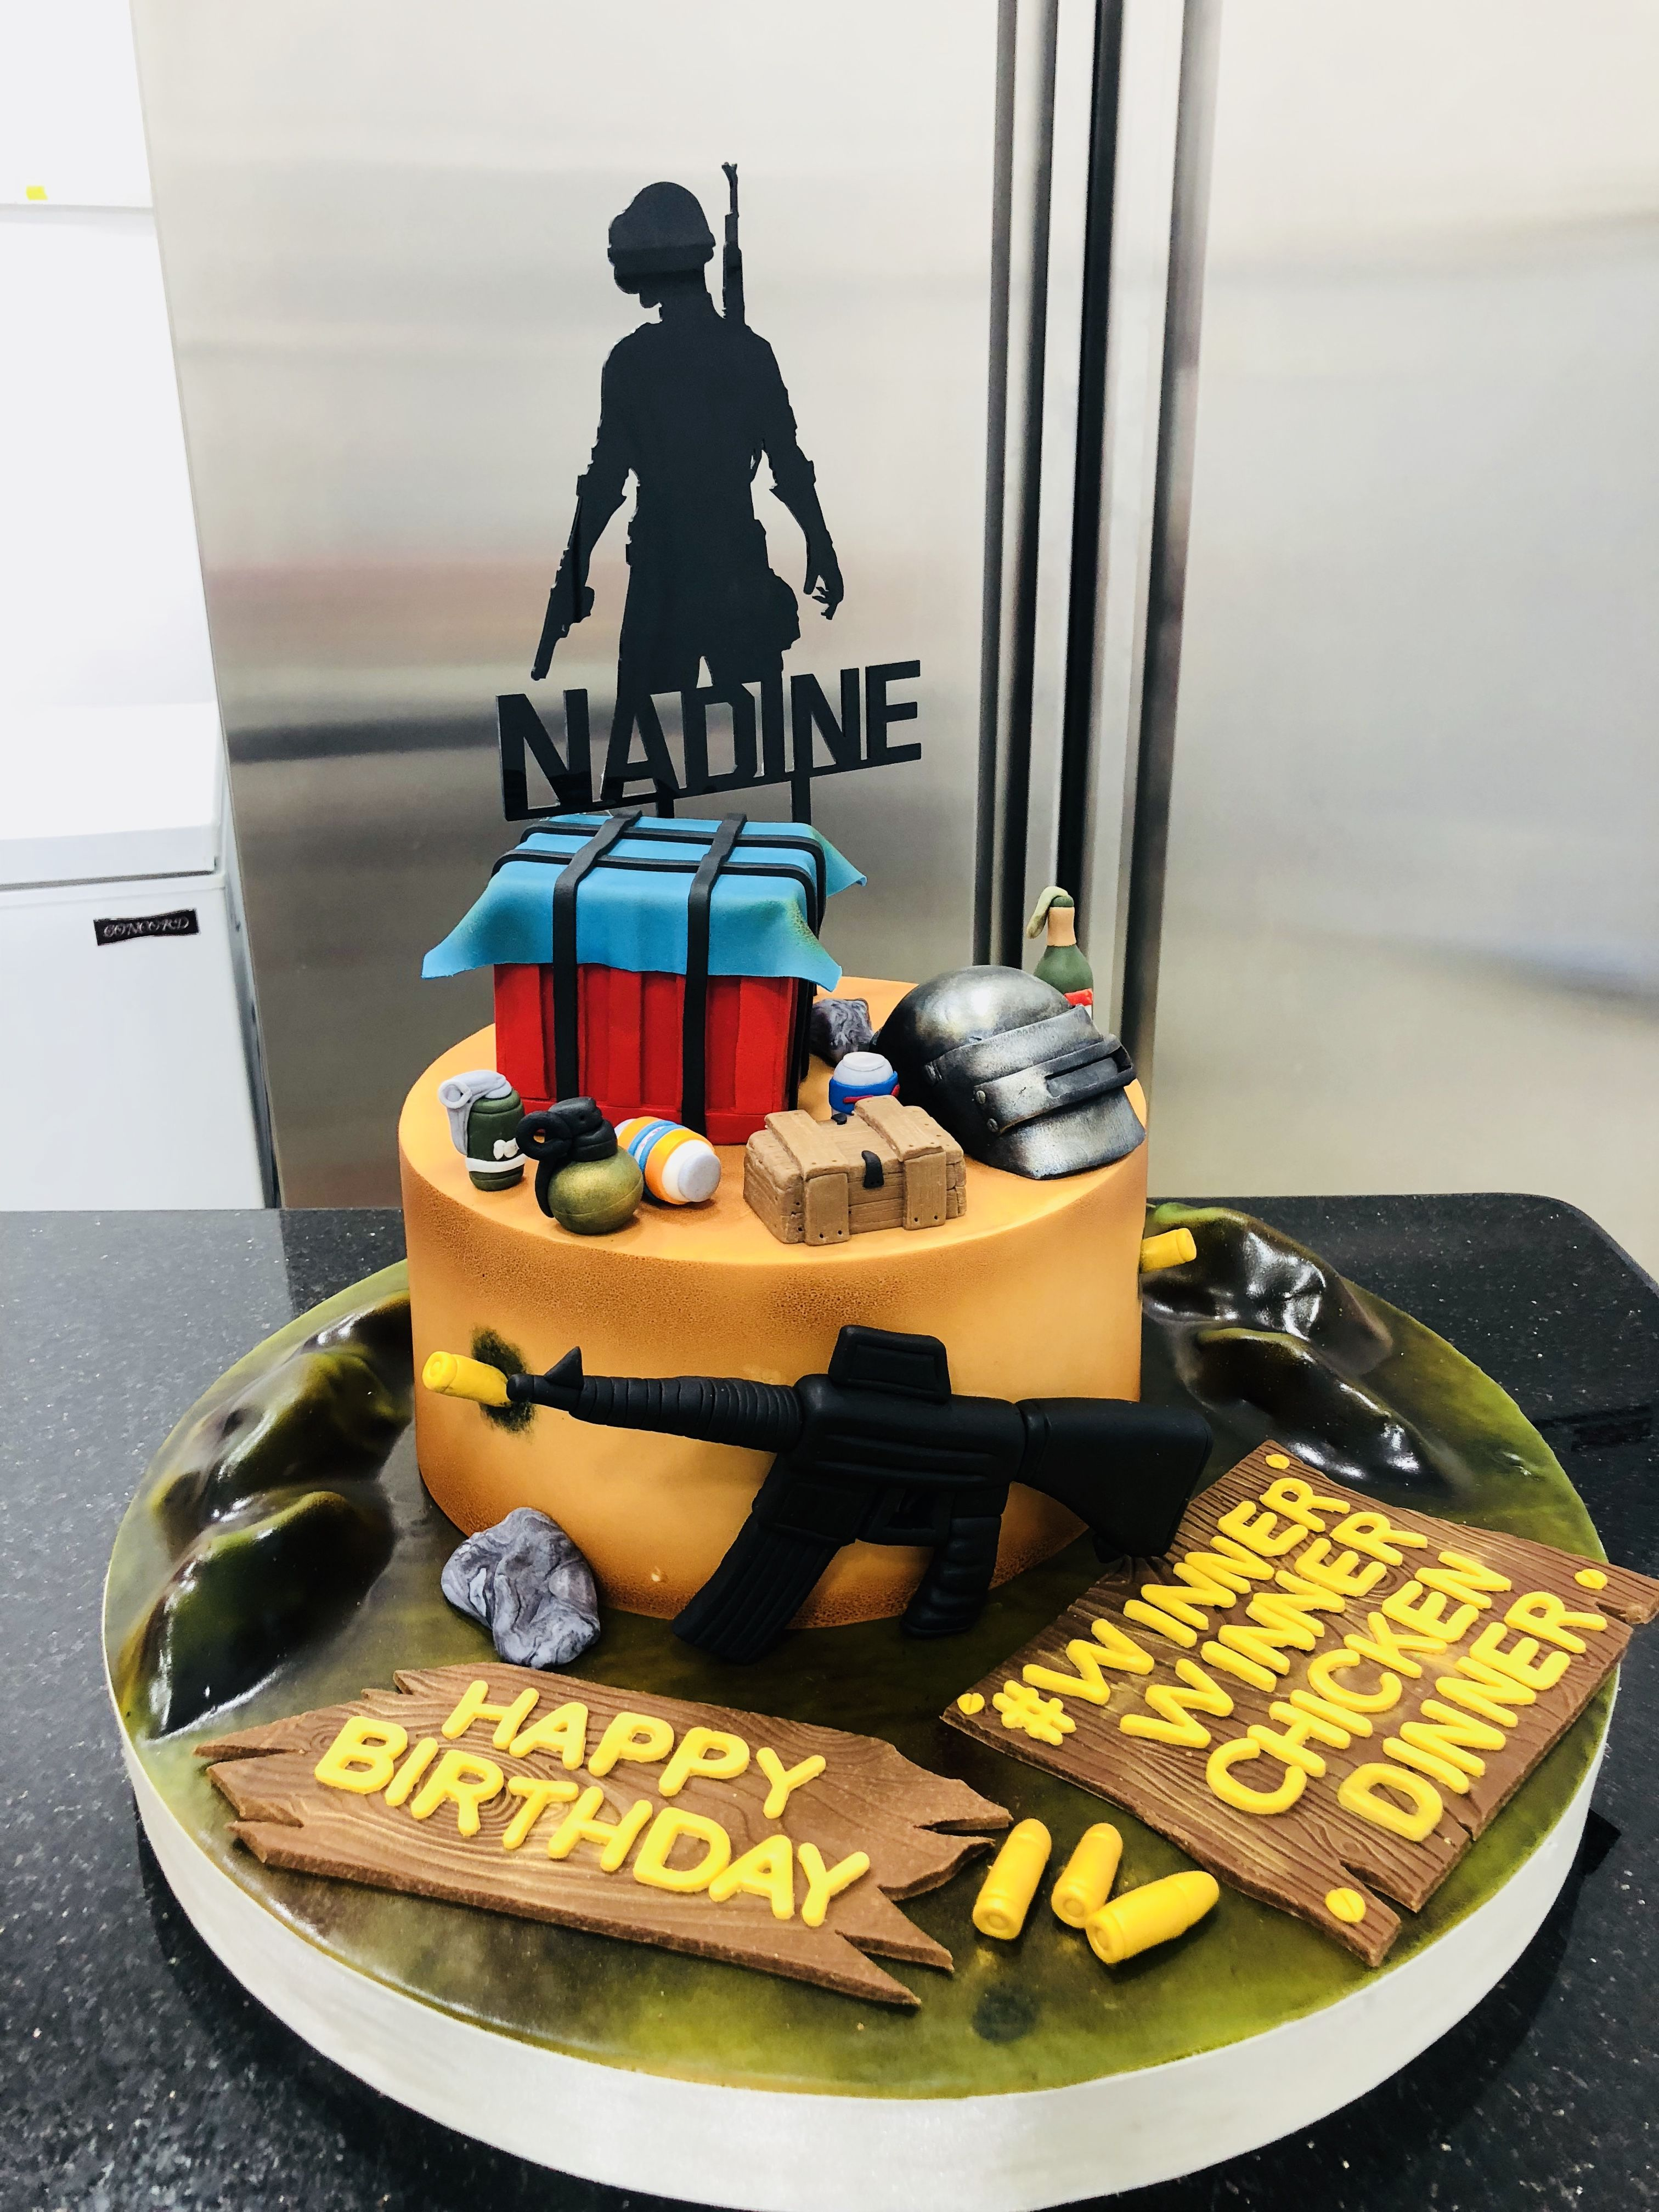 Pubg Cake By Abbas Ayoub Cakes By Abbas Ayoub In 2019 Cake